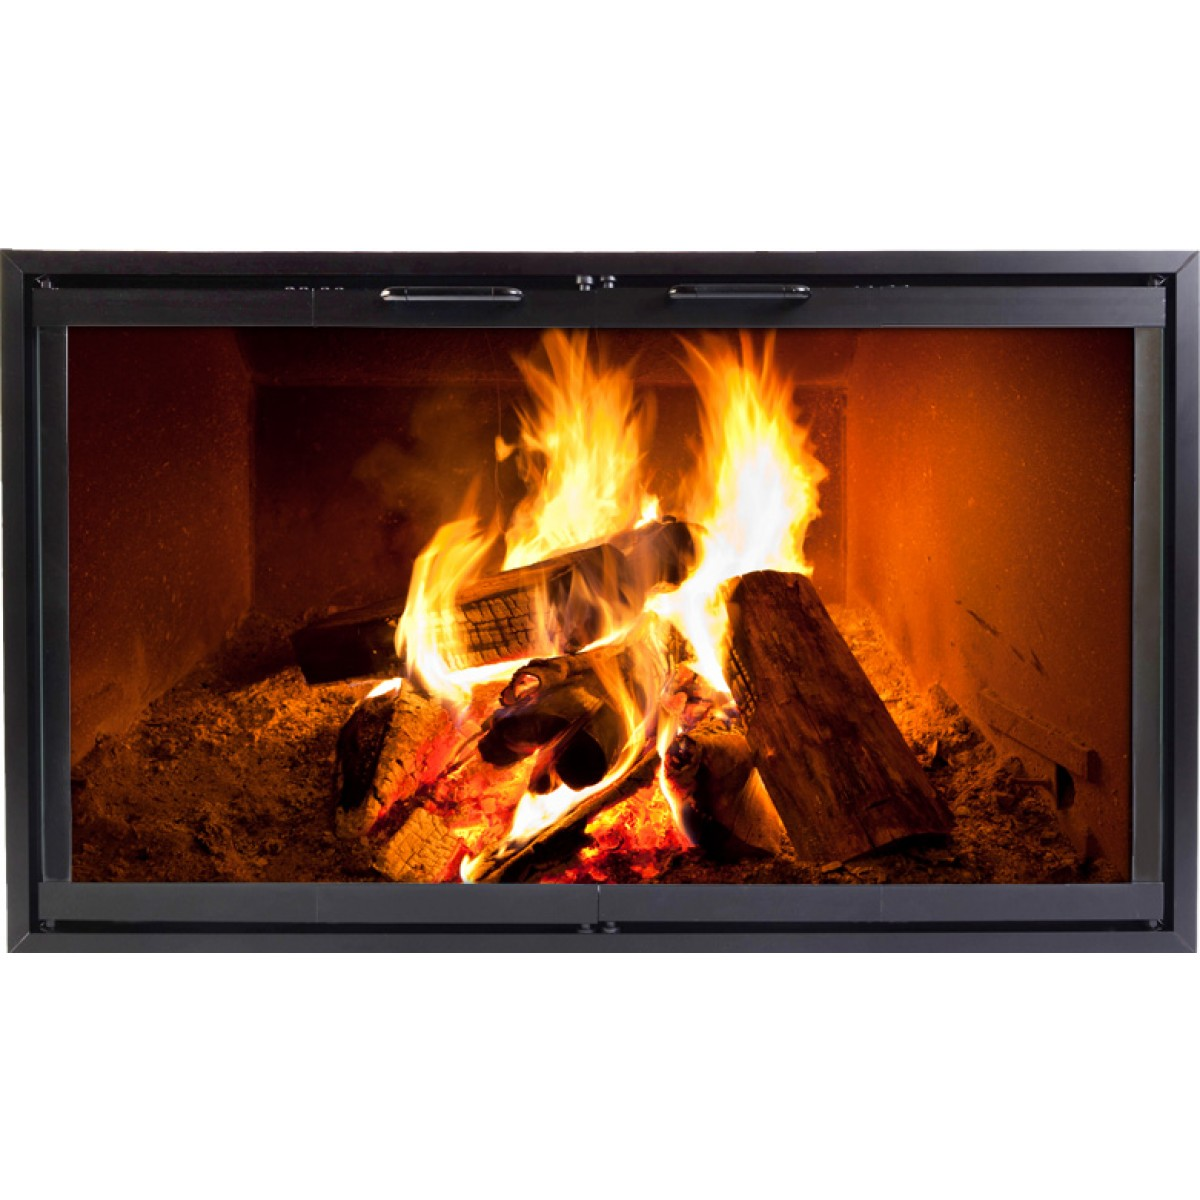 Fresh Fmi Fireplaces | Admirable Fireplaces Okc